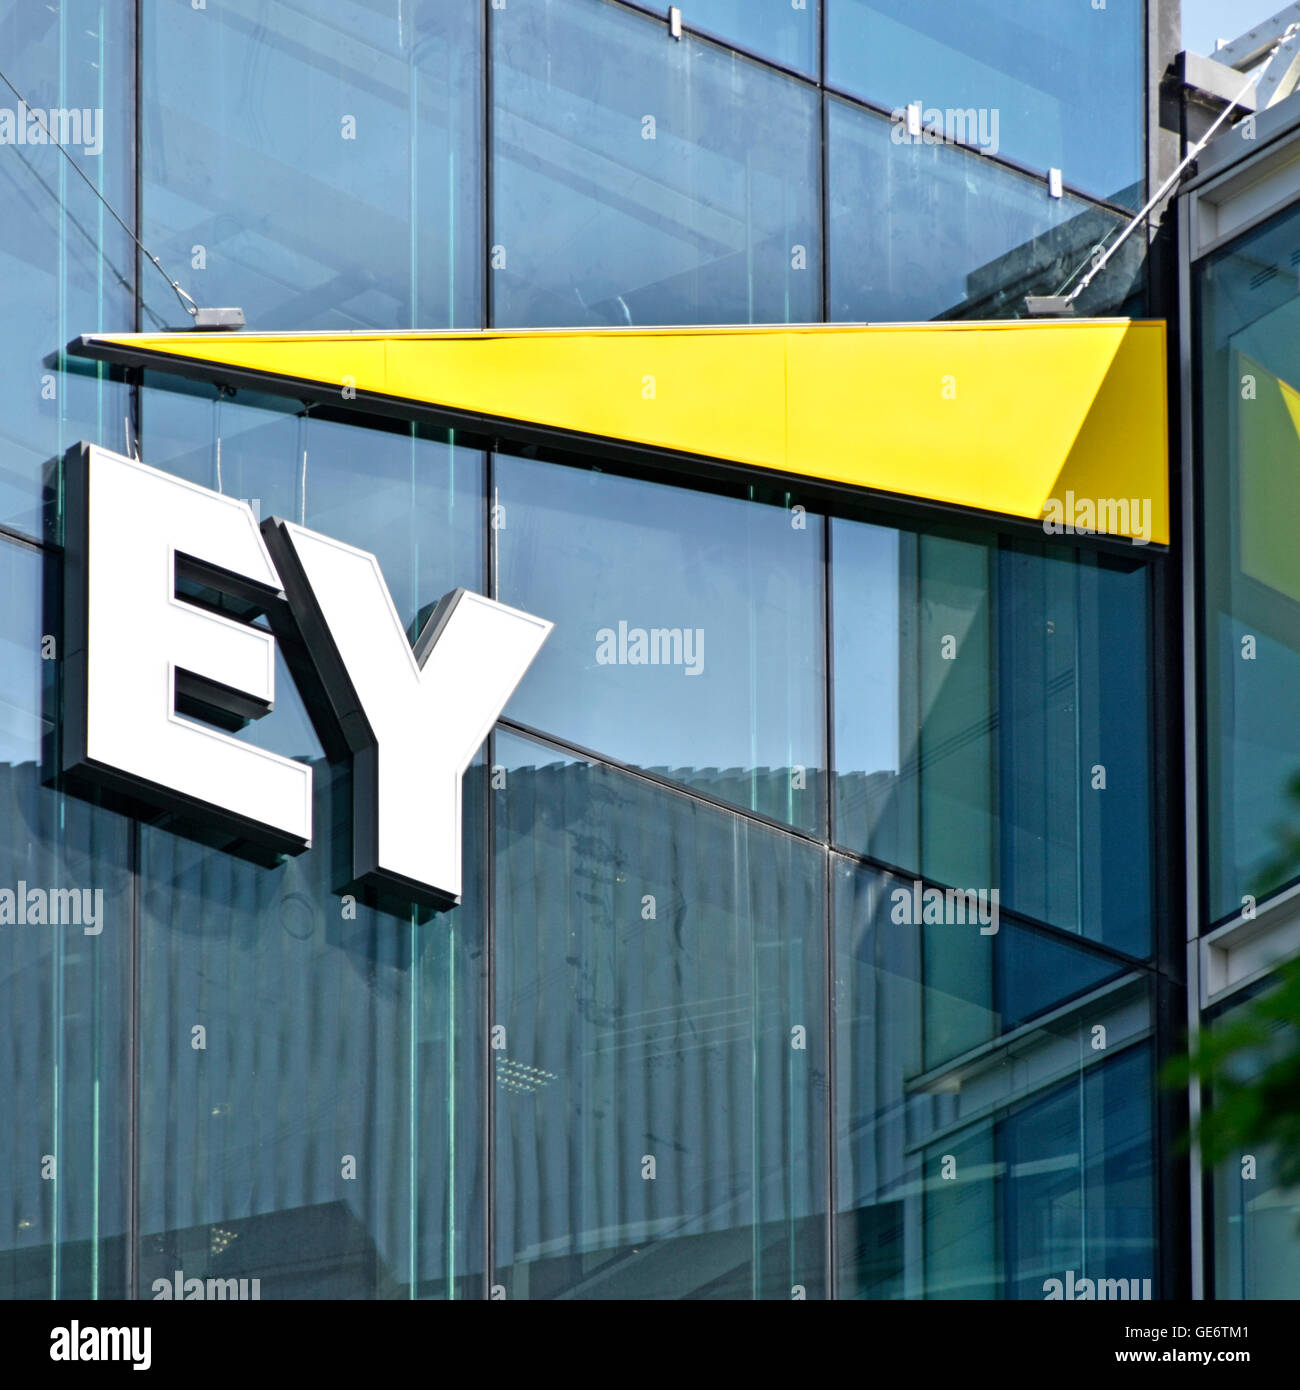 London office of Ernst & Young logo & sign for multinational professional services firm in Southwark England - Stock Image